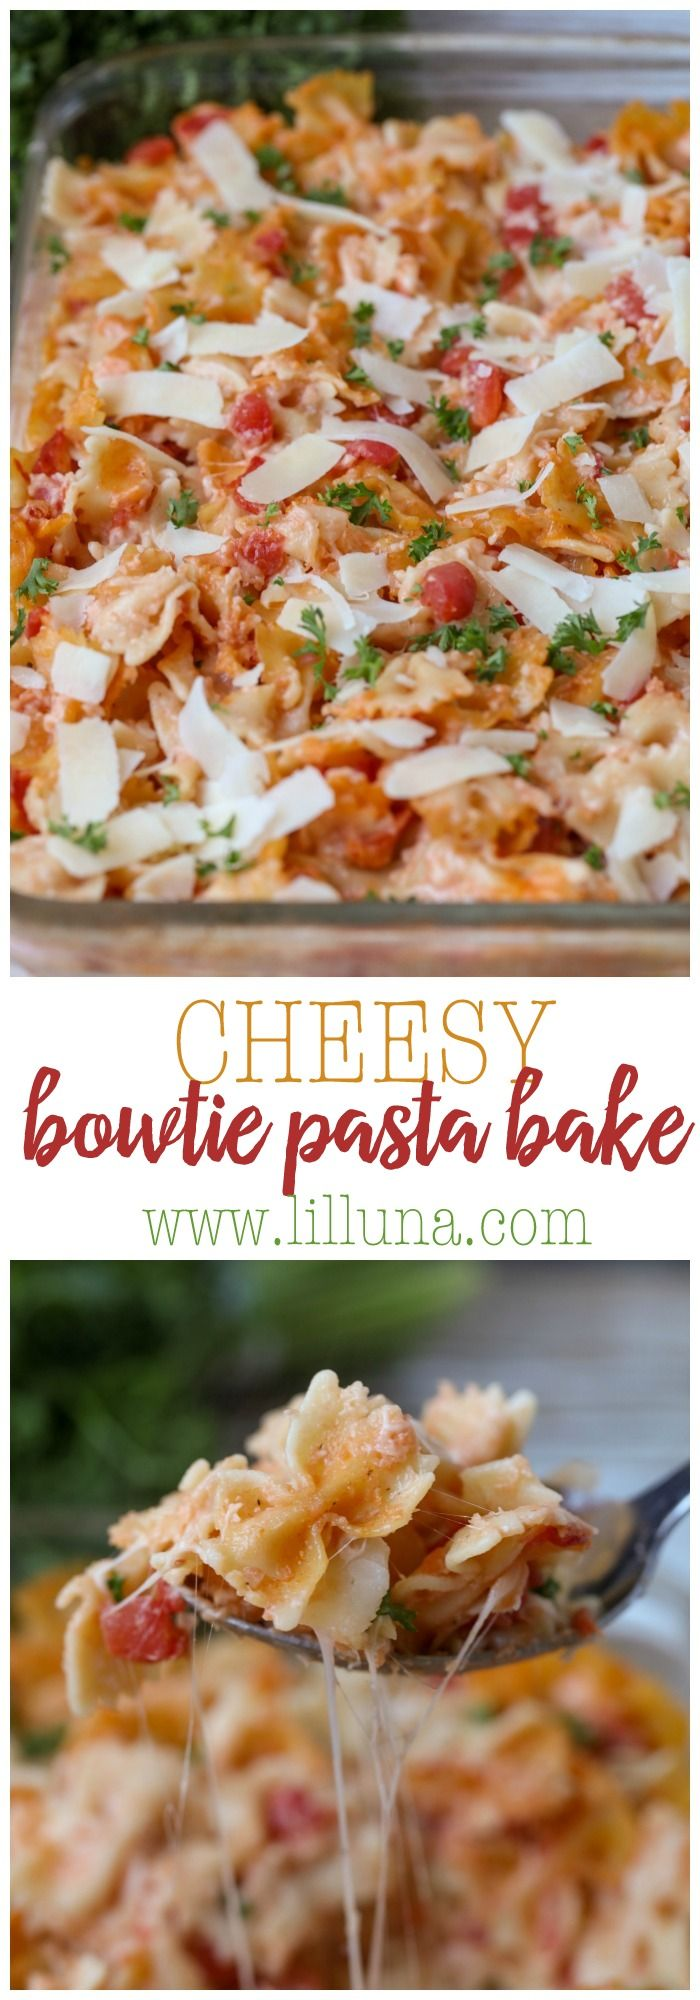 Cheesy Bowtie Pasta Bake - a favorite dinner recipe!! The whole family loves this cheesy dish.